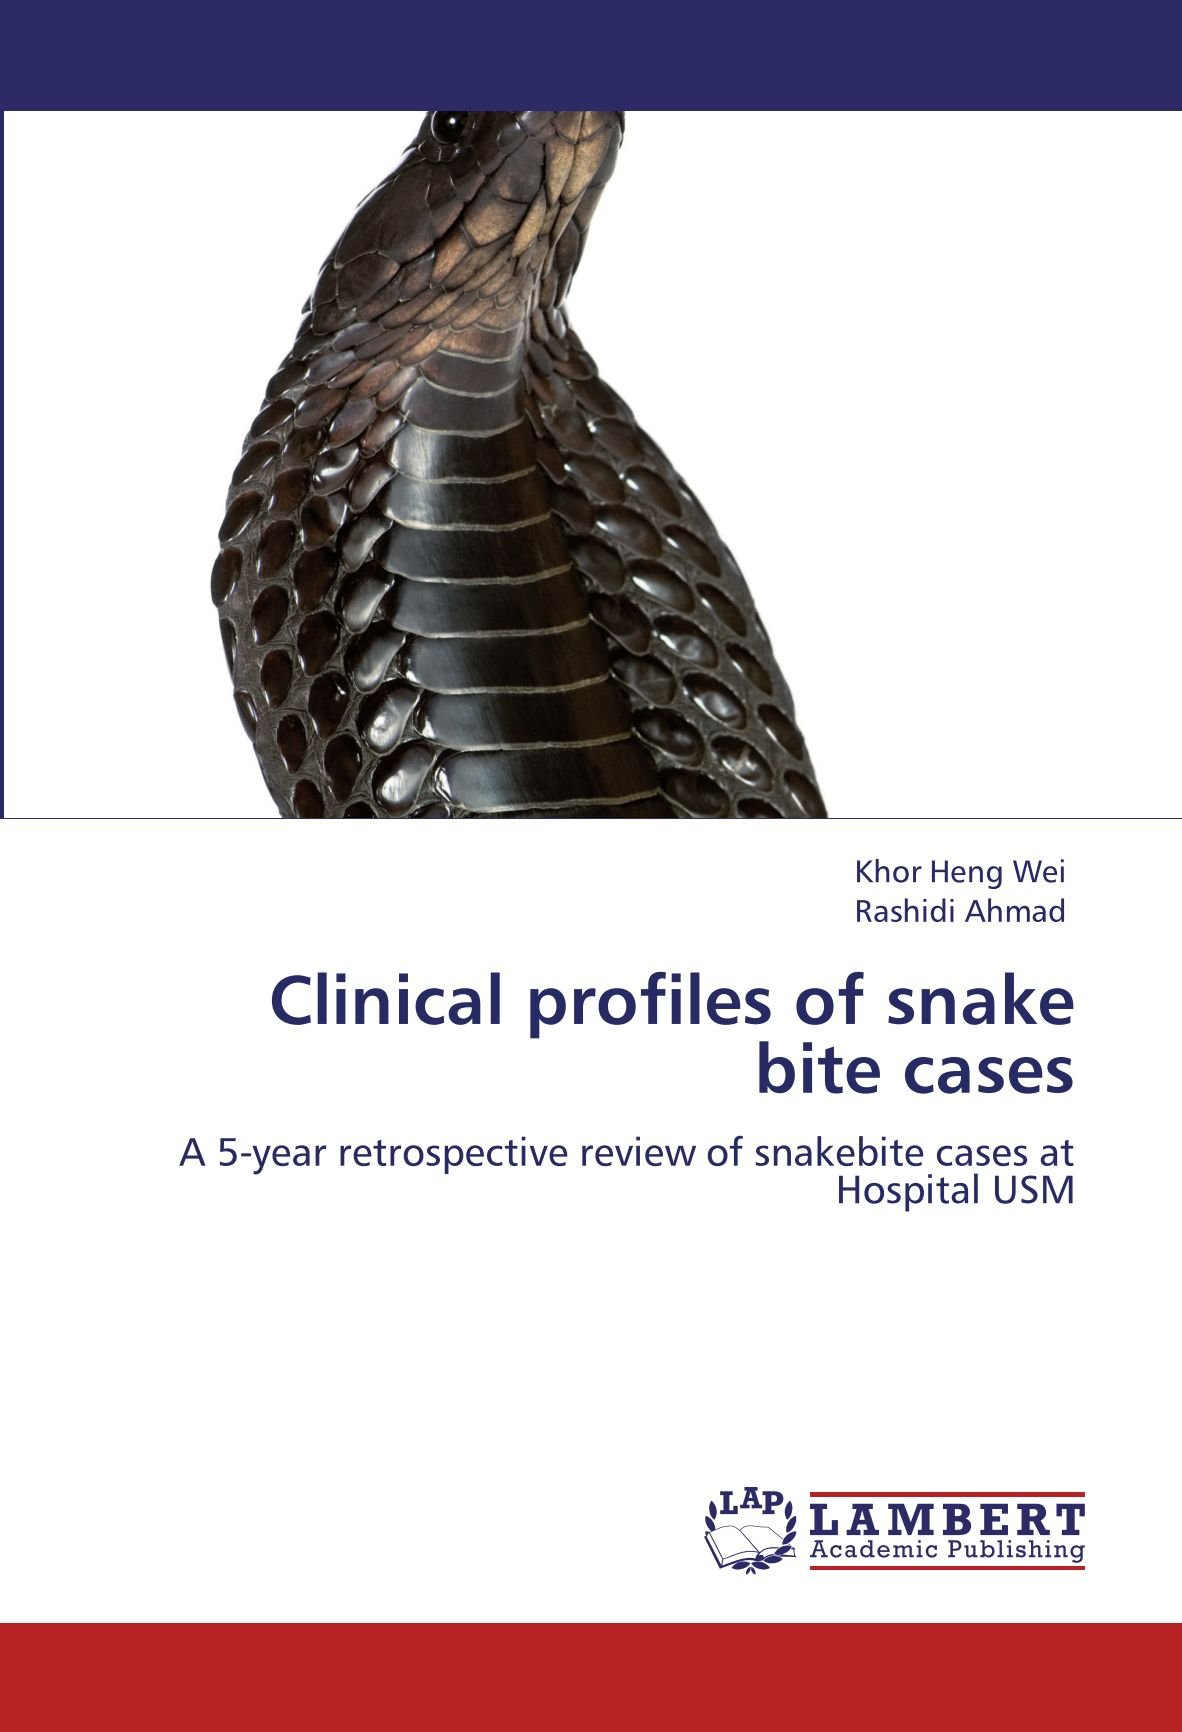 Download Clinical profiles of snake bite cases: A 5-year retrospective review of snakebite cases at Hospital USM ebook